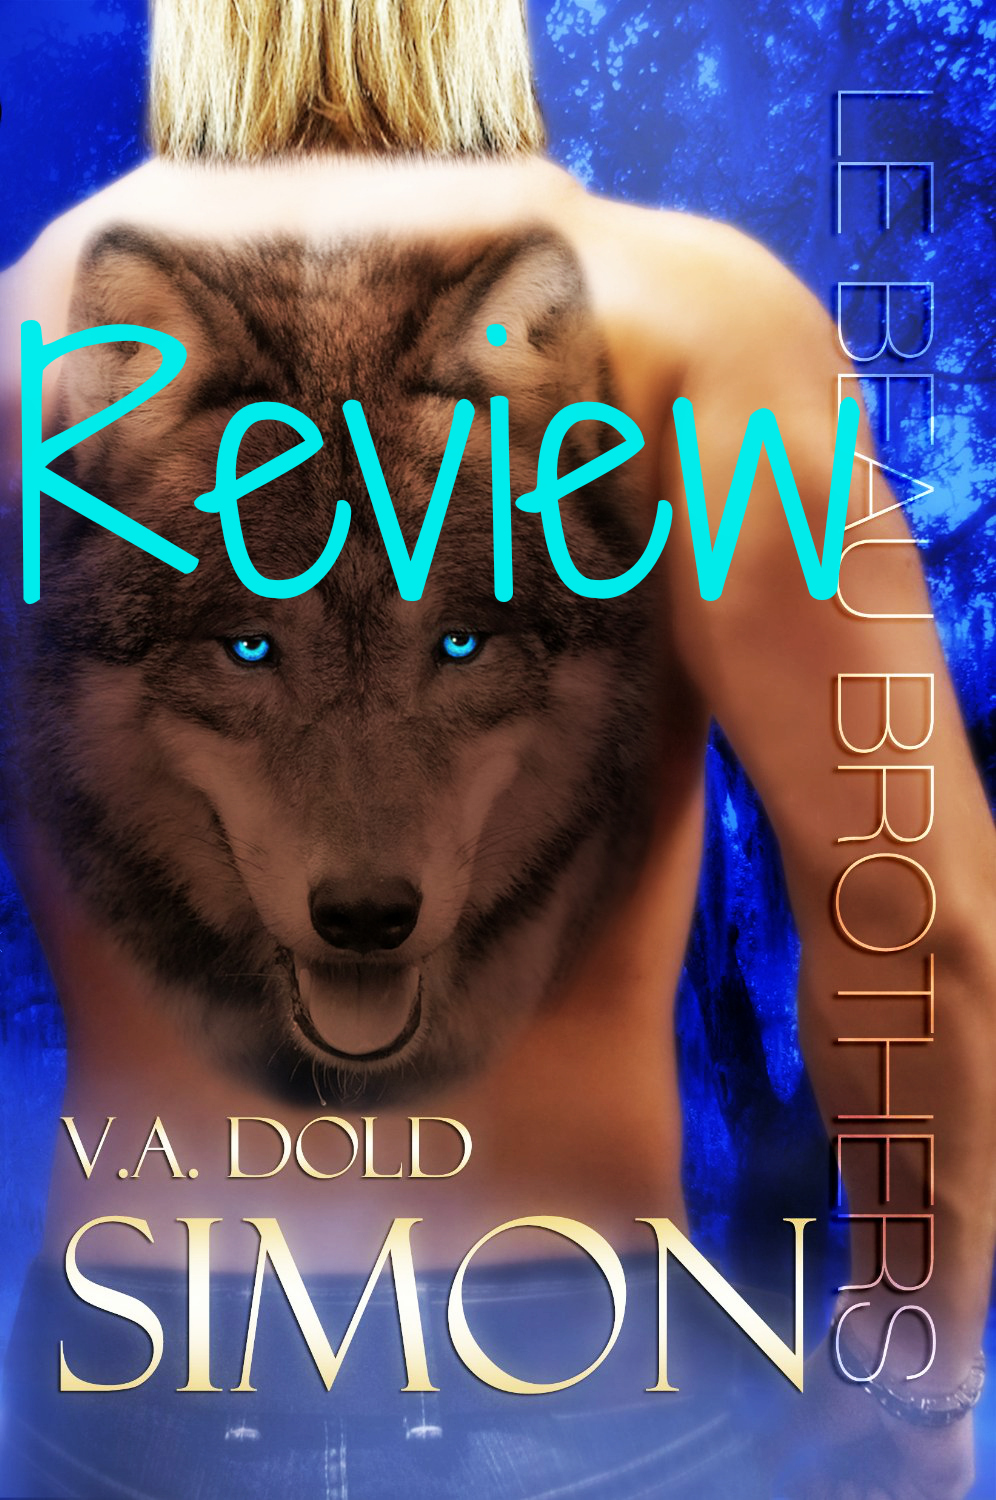 BLOG TOUR REVIEW & GIVEAWAY: SIMON by V.A. Dold